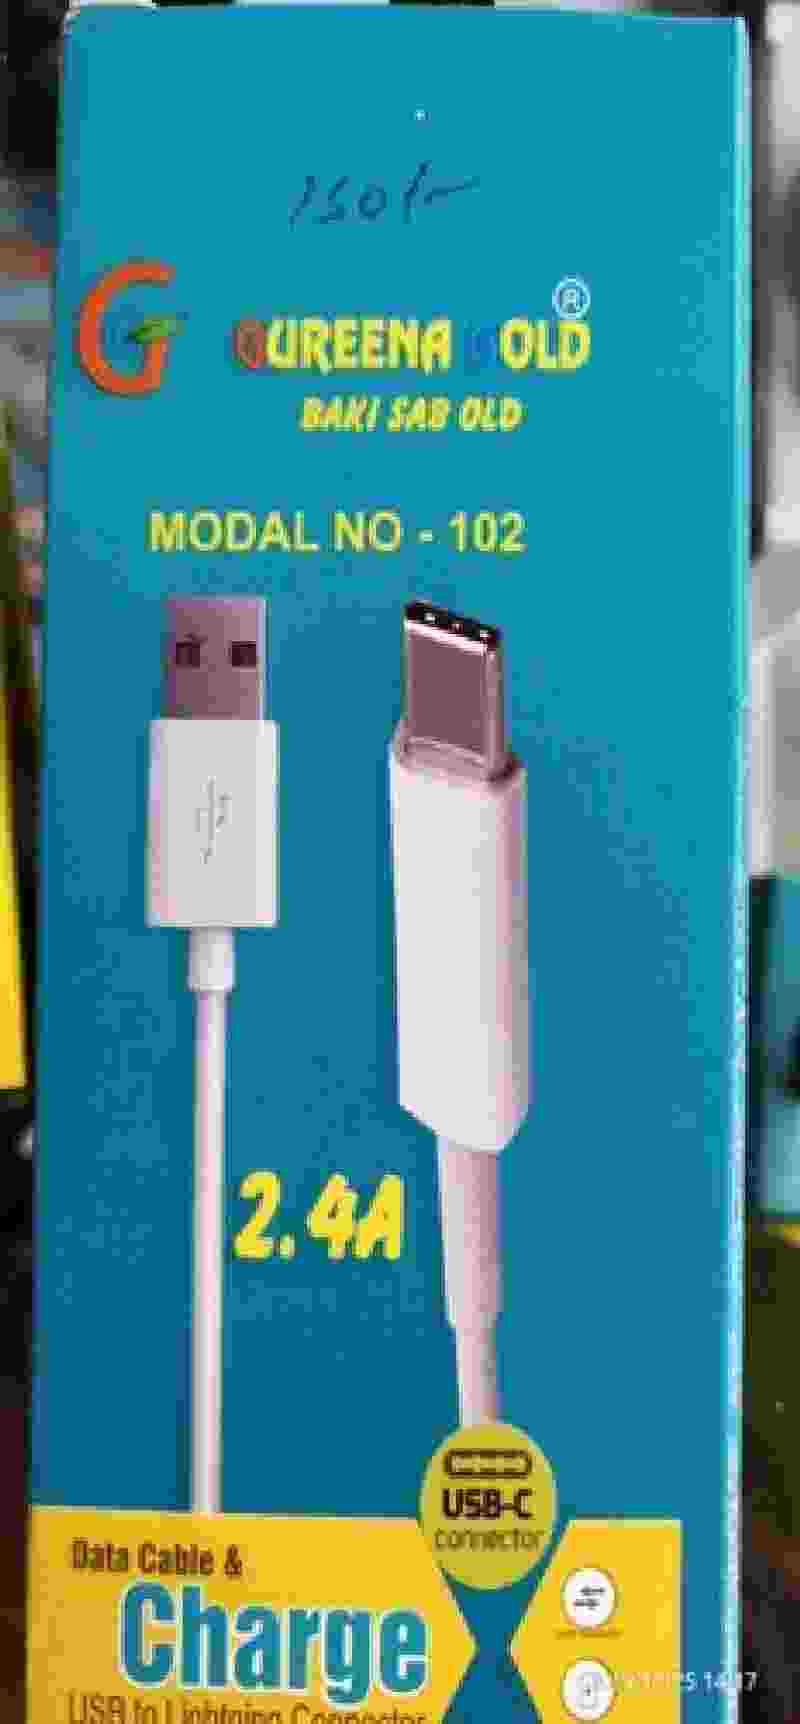 GUREENA GOLD 2.4A 102 Type C Fast Charging Data Cable